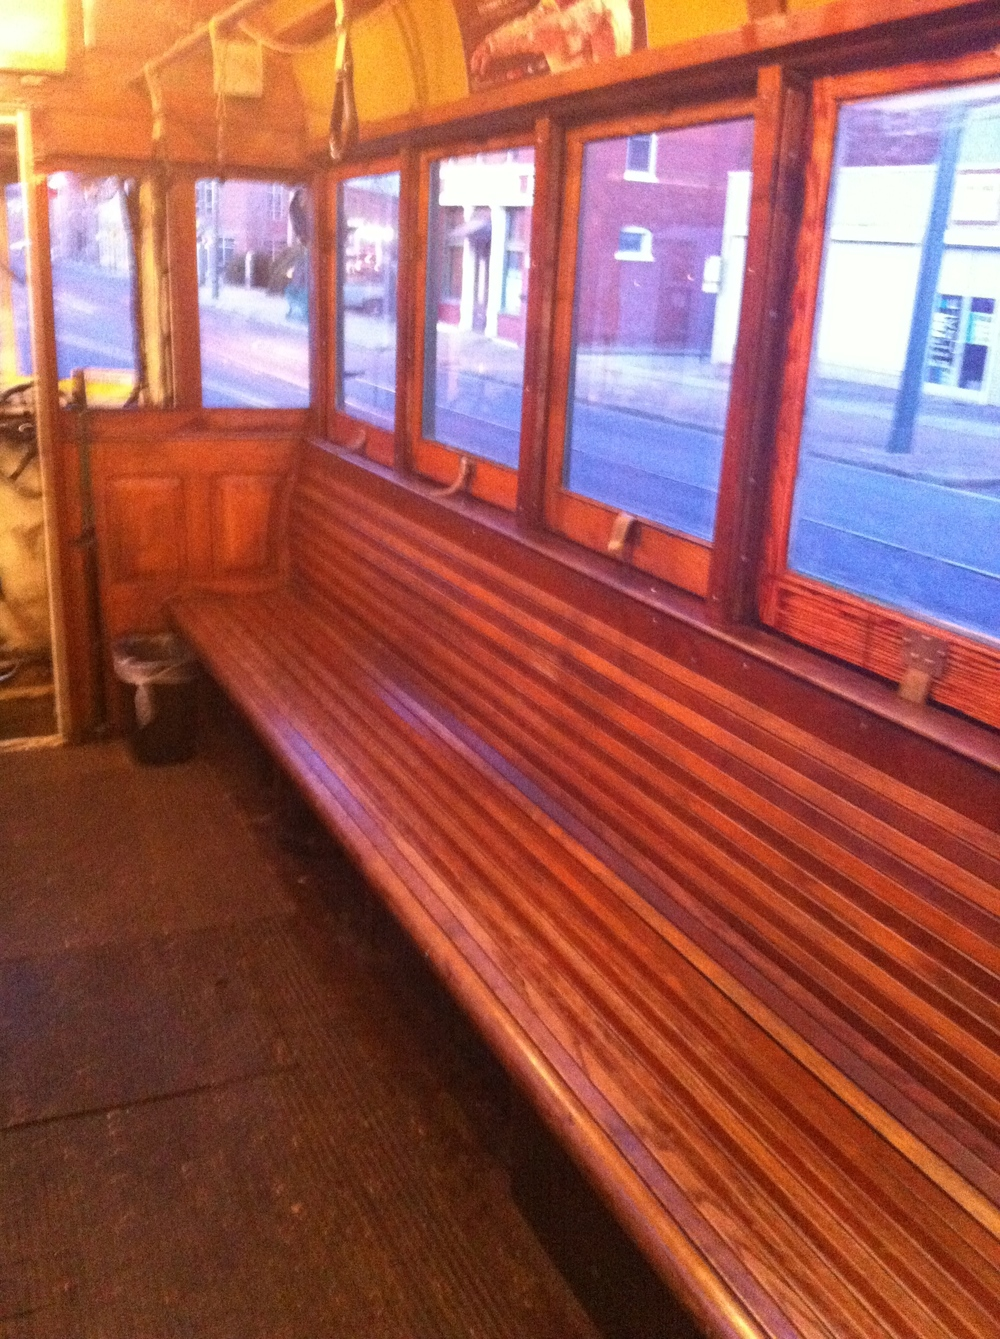 Inside the trolley are long wooden benches or small single seats.